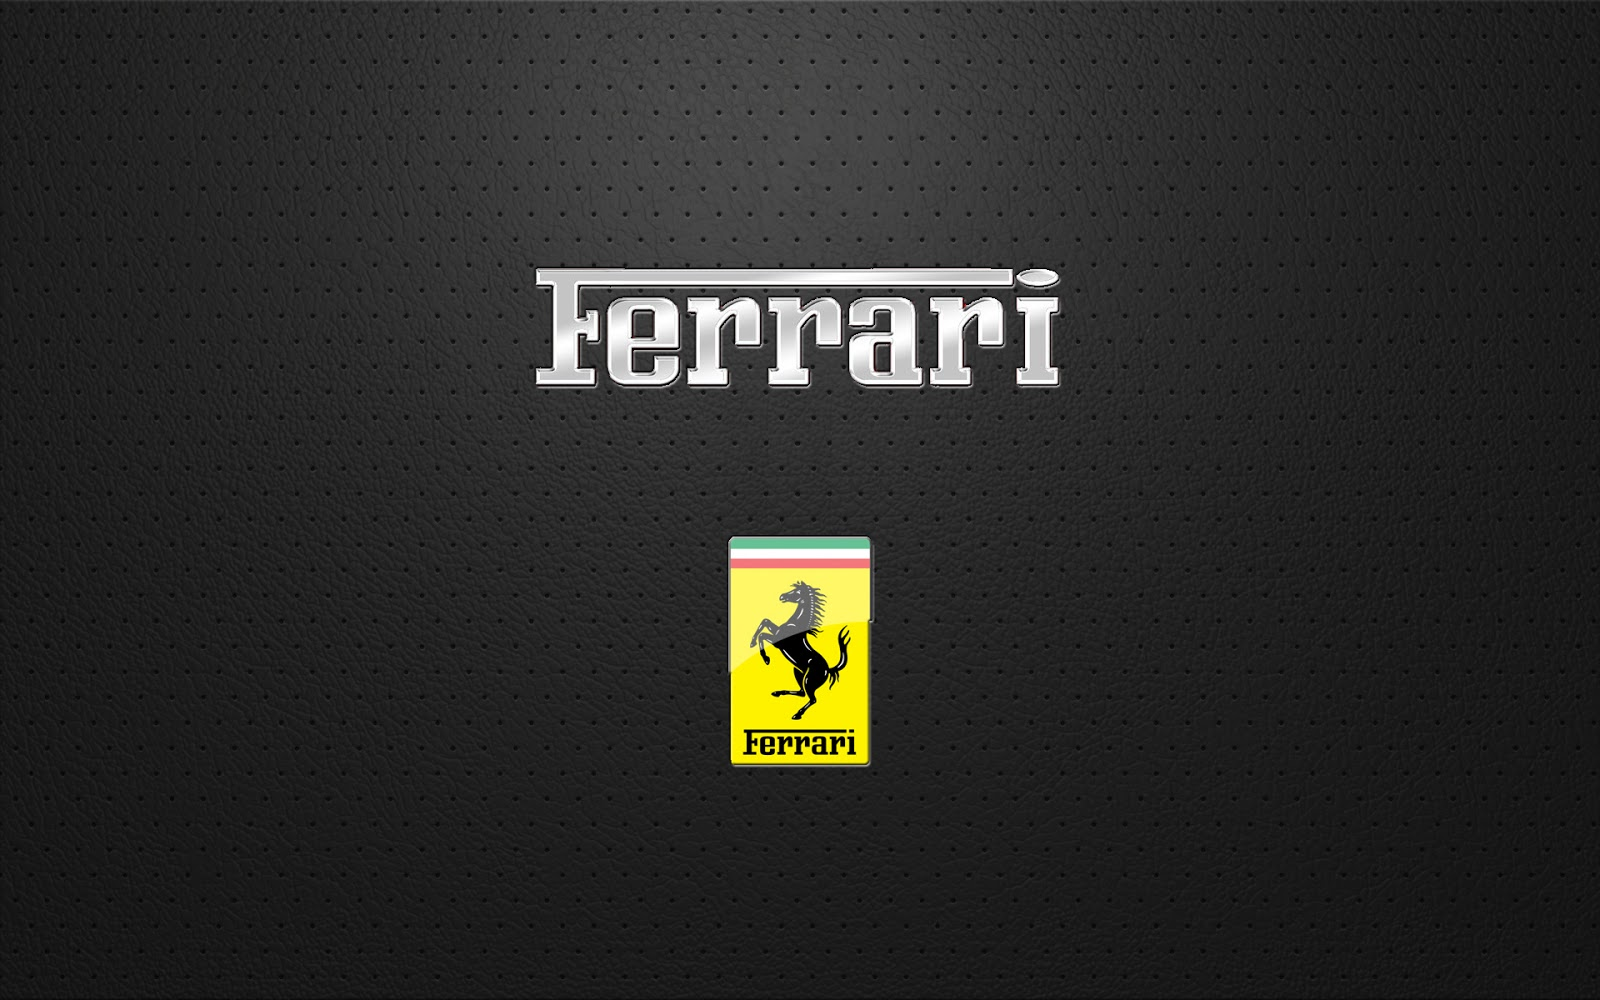 Ferrari logo ferrari car symbol meaning and history car brand ferrari symbol buycottarizona Choice Image